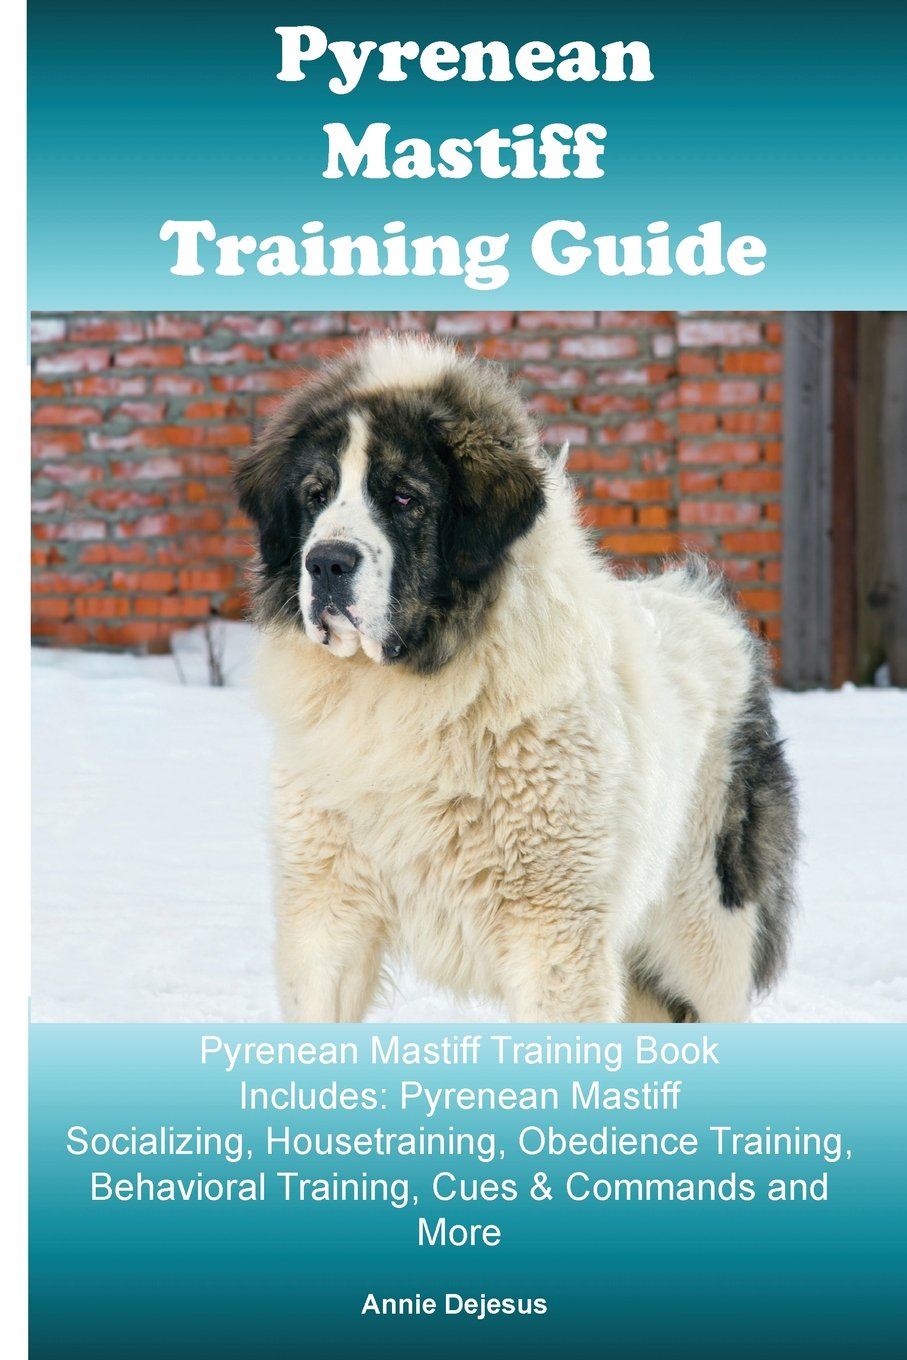 Download Pyrenean Mastiff Training Guide Pyrenean Mastiff Training Book Includes: Pyrenean Mastiff Socializing, Housetraining, Obedience Training, Behavioral Training, Cues & Commands and More PDF